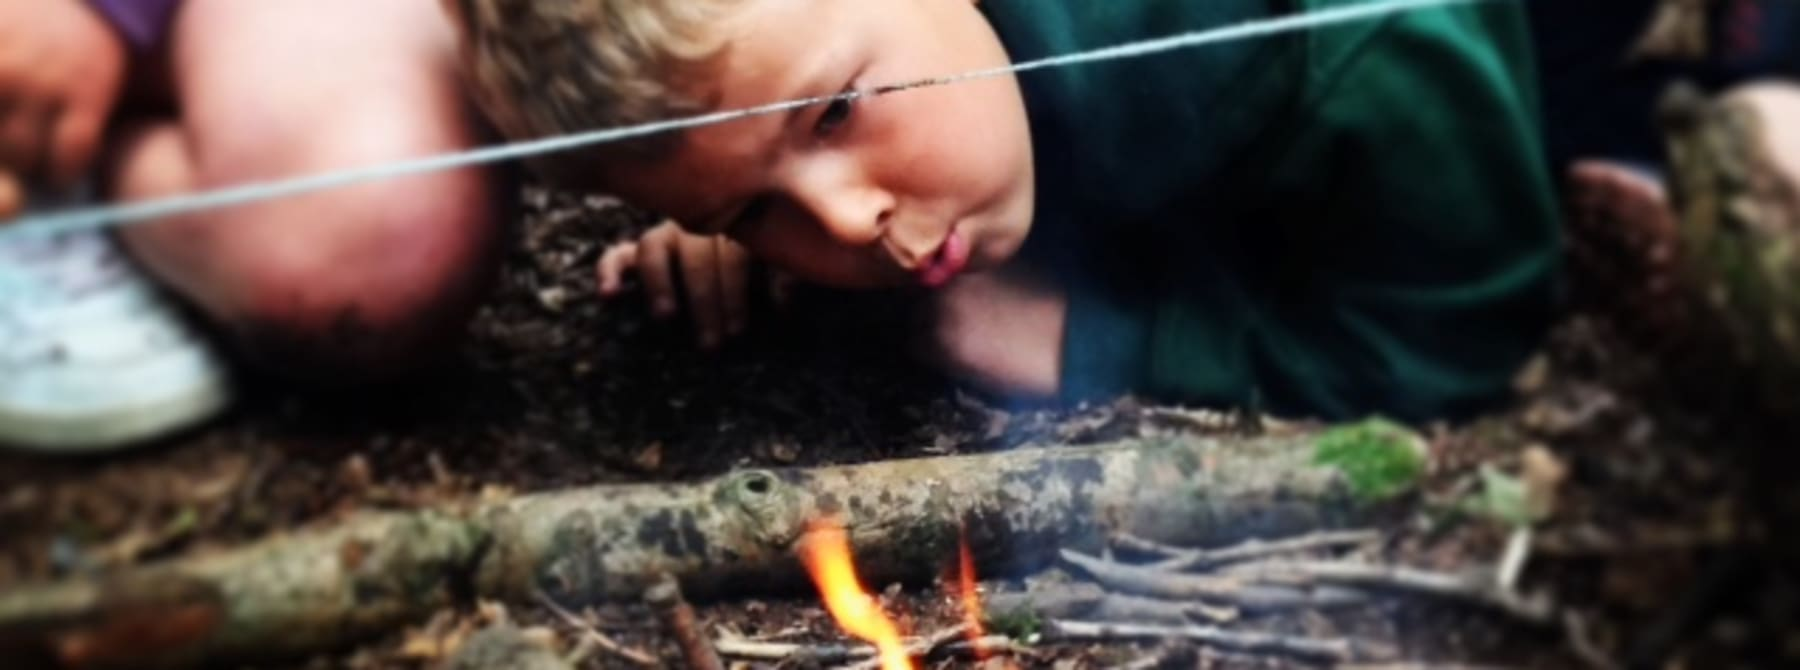 Forest School Booking page